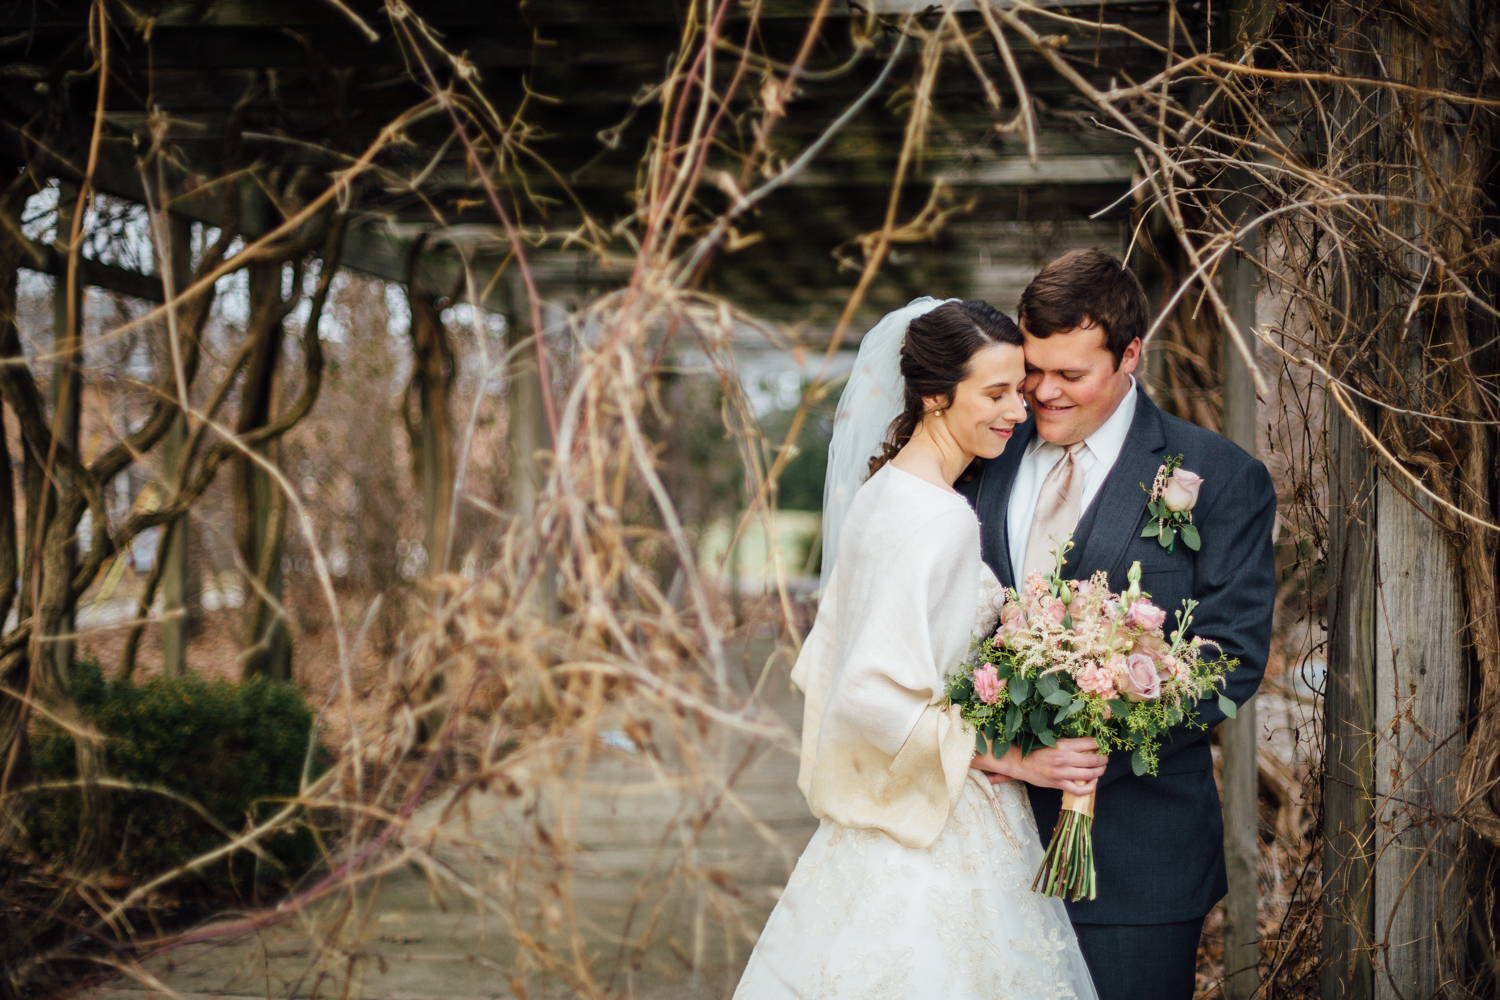 Fun, Intimate Spring Wedding by Corrie Mick Photography-55.jpg